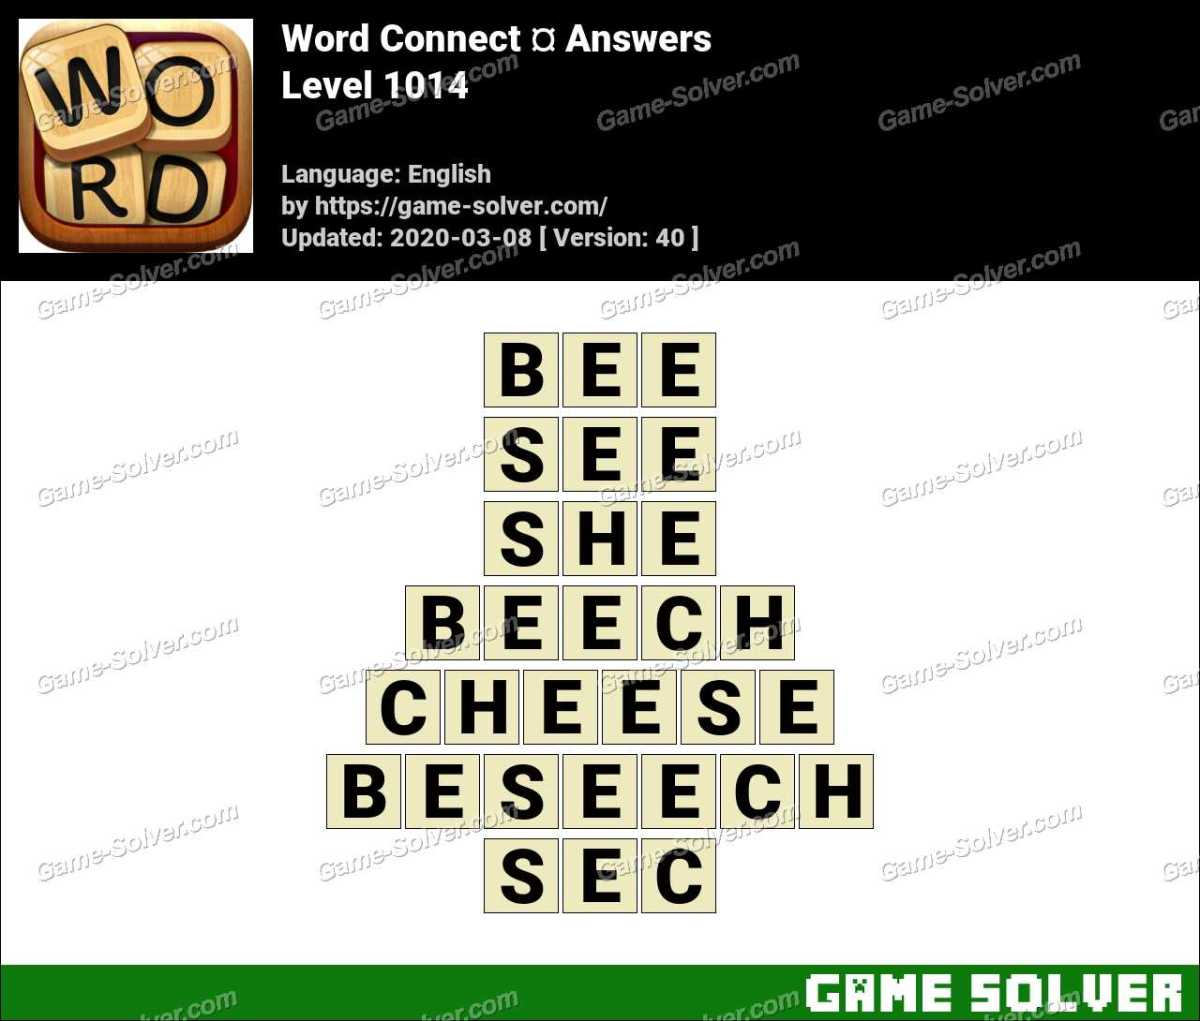 Word Connect Level 1014 Answers